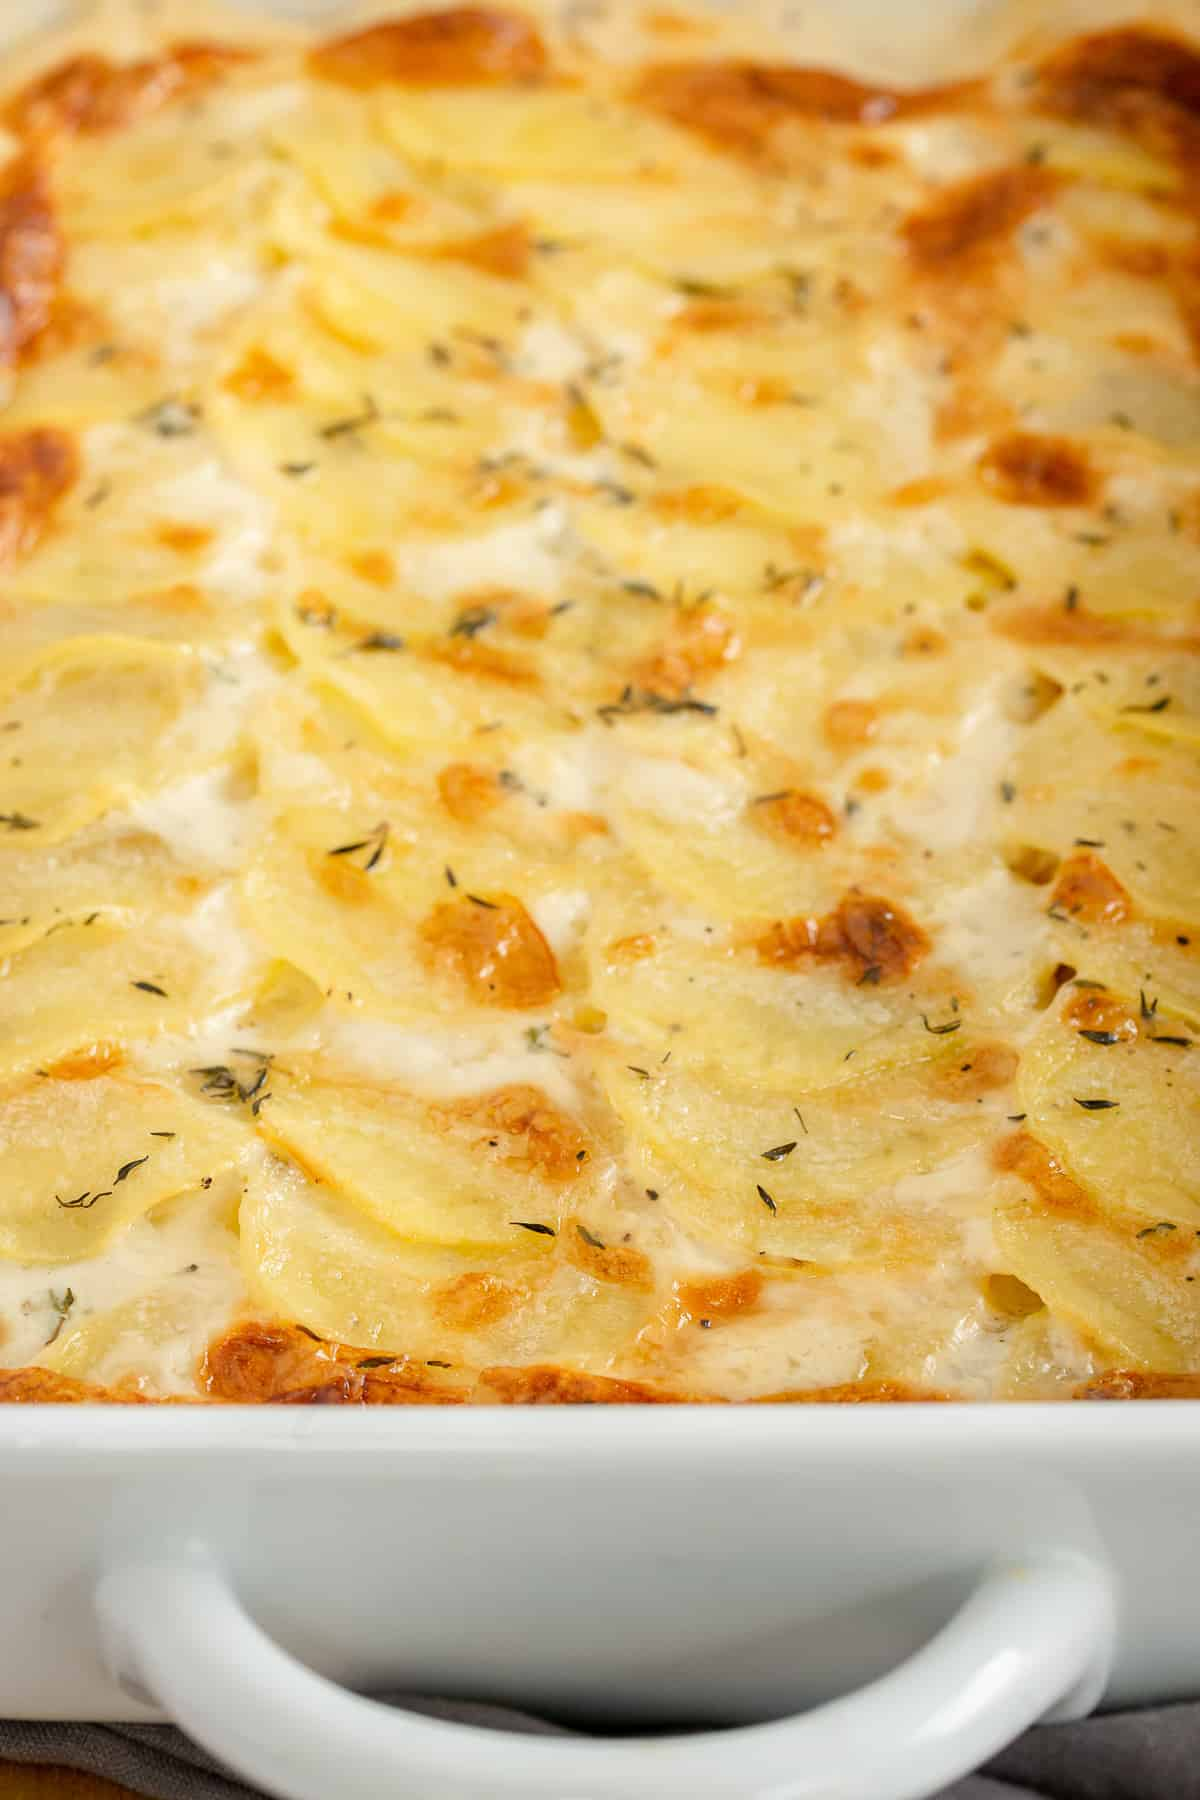 A close up of scalloped potatoes in a white baking dish.